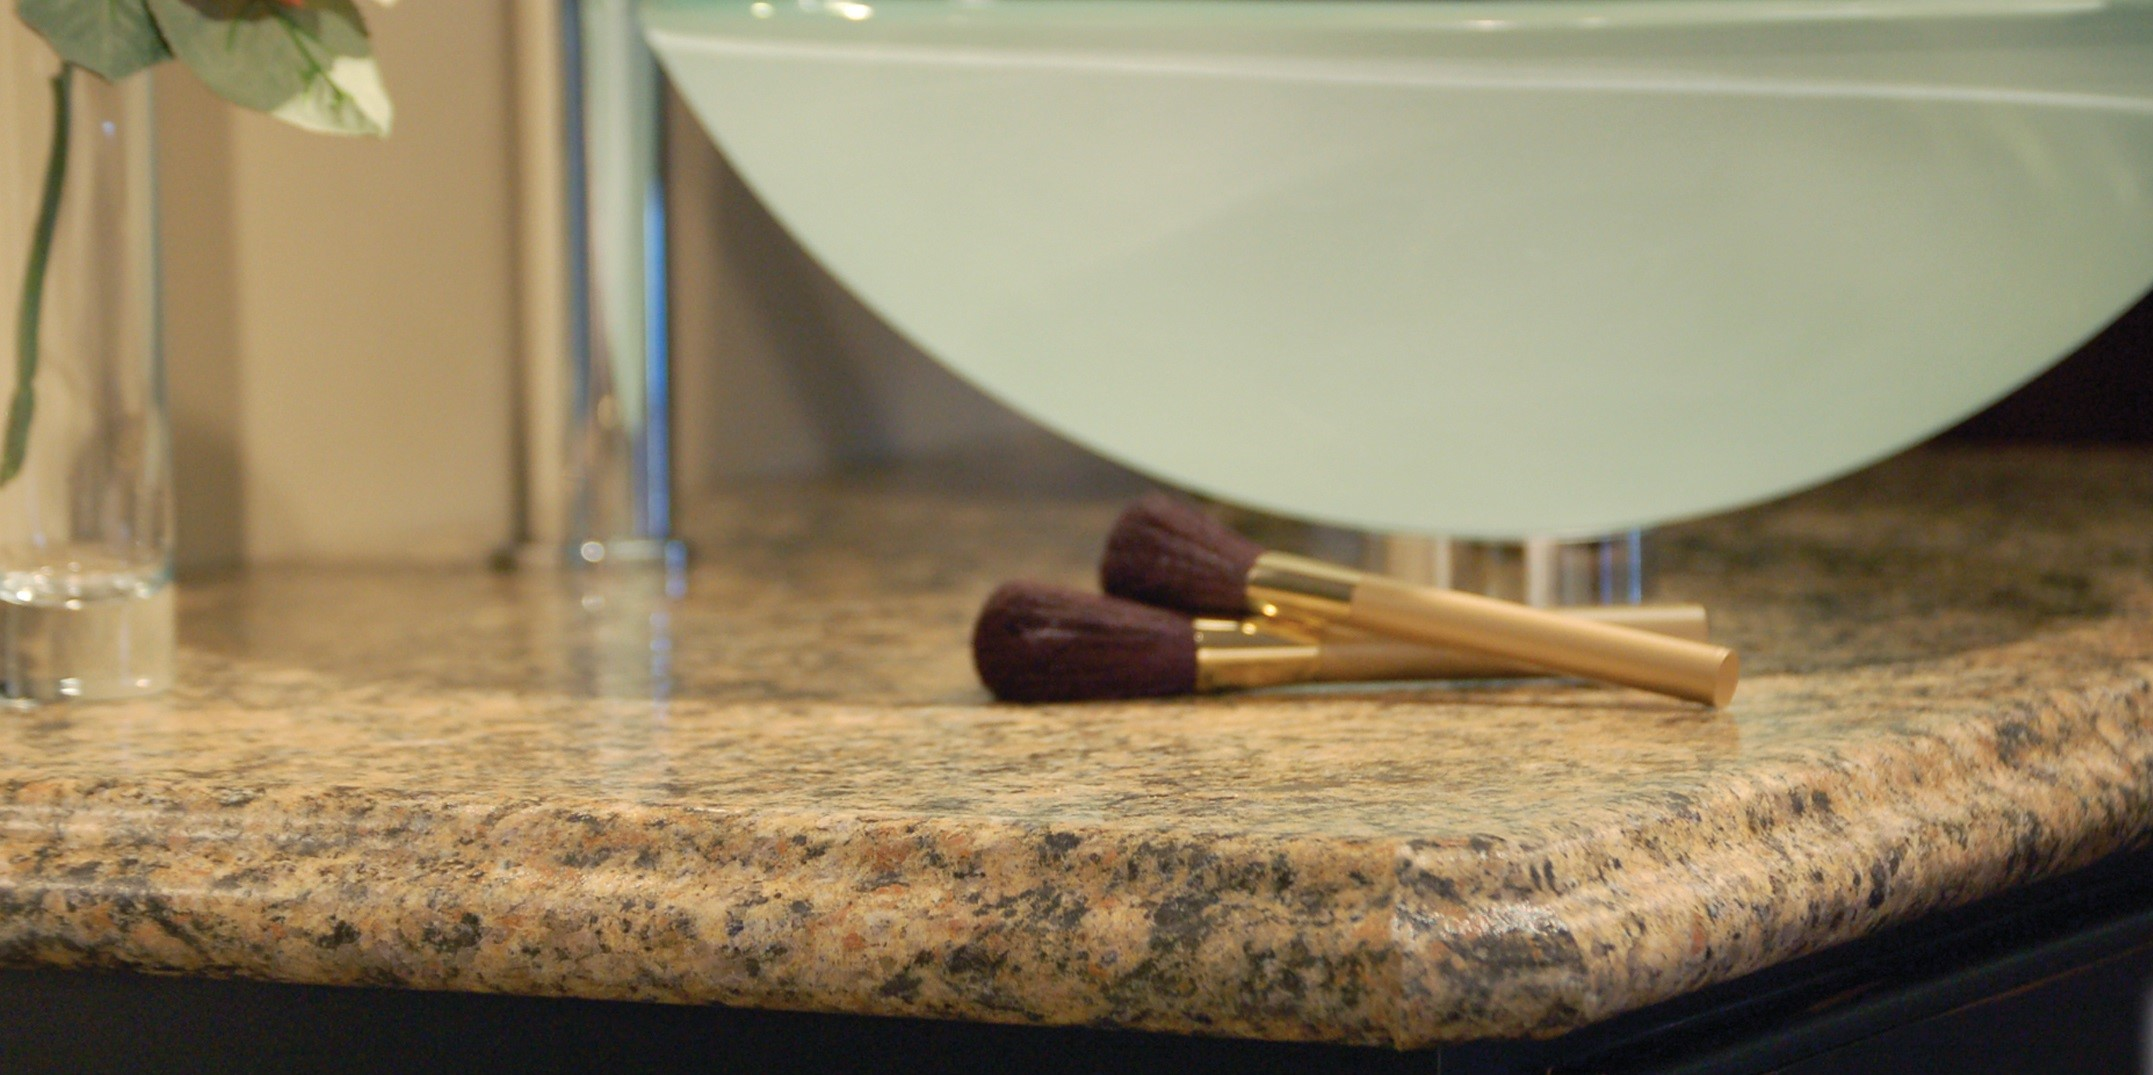 Exceptionnel Countertop With Makeup Brushes Laminate ...